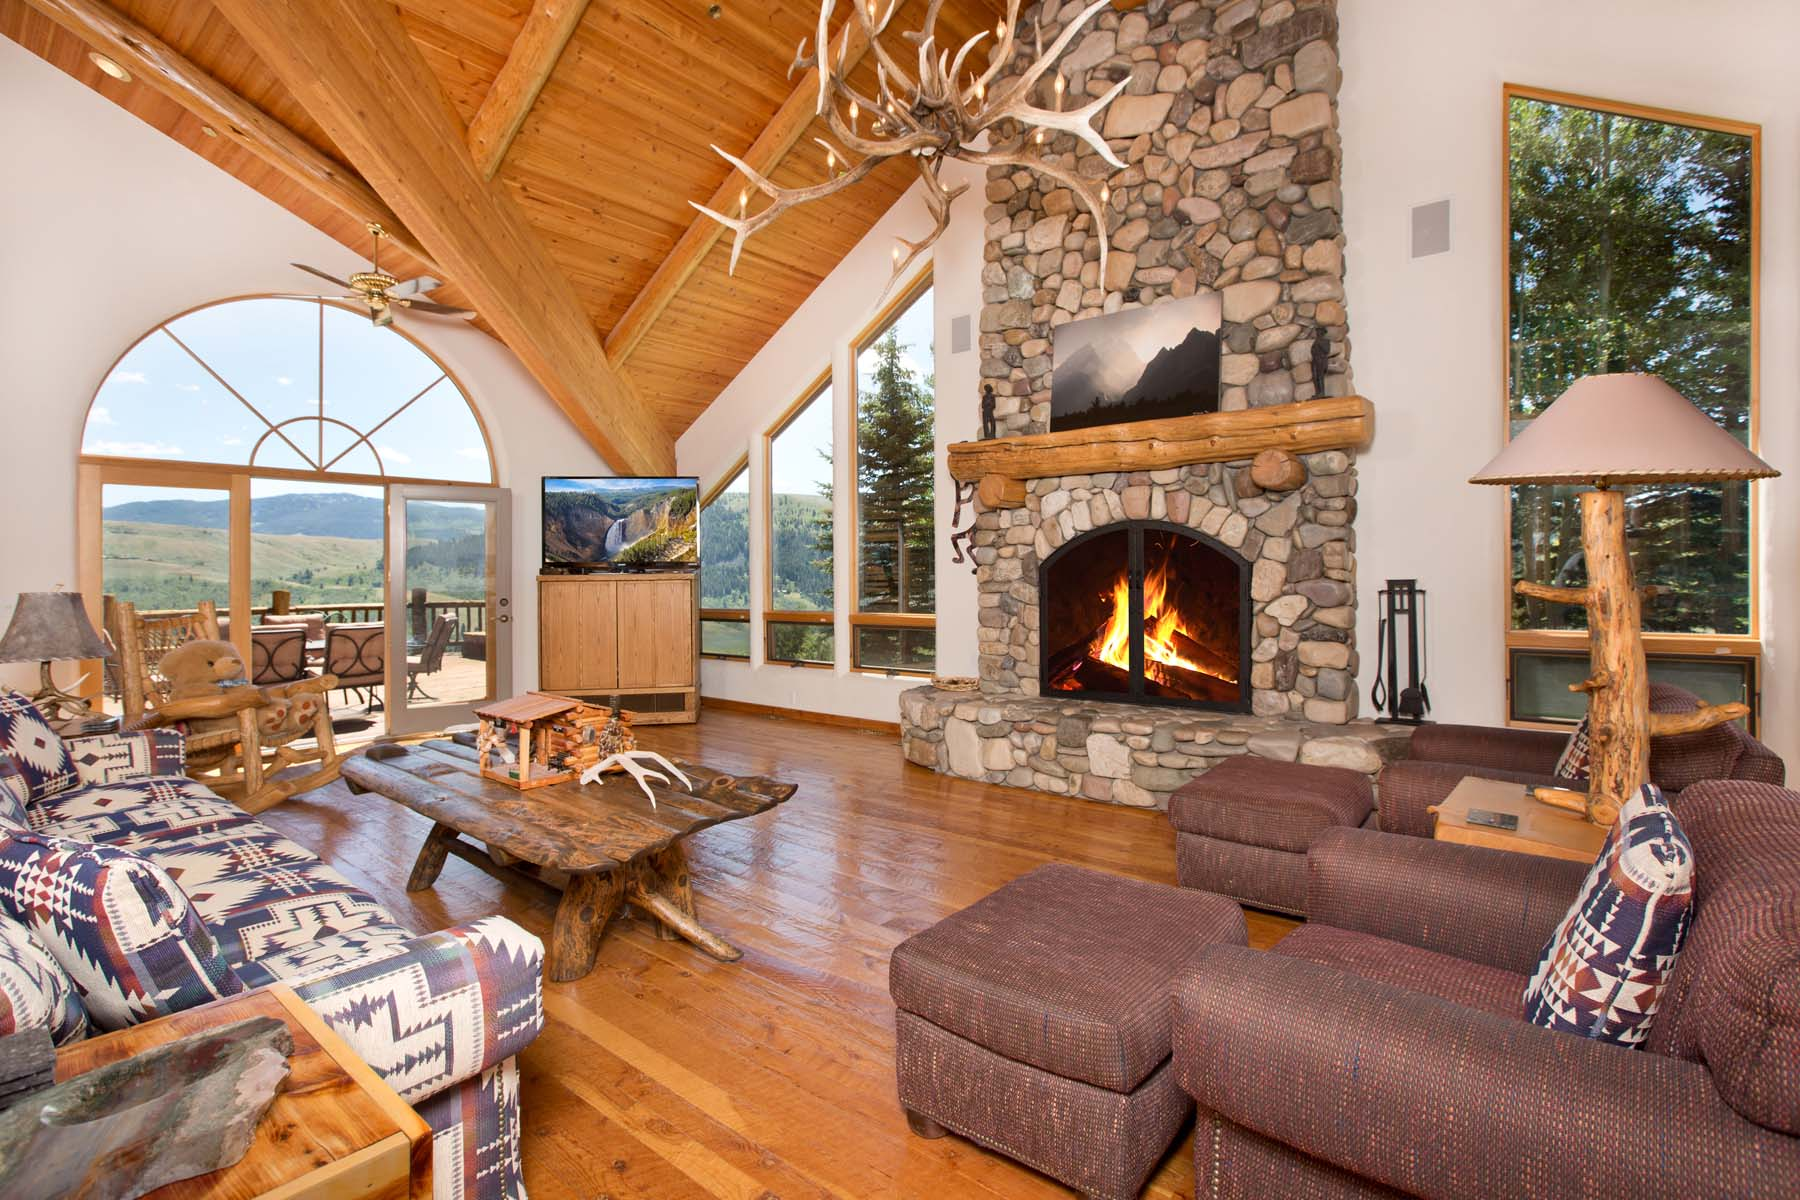 Single Family Home for Sale at Rarely Available Views and Setting 1400 Gannett Road Jackson, Wyoming 83001 United States